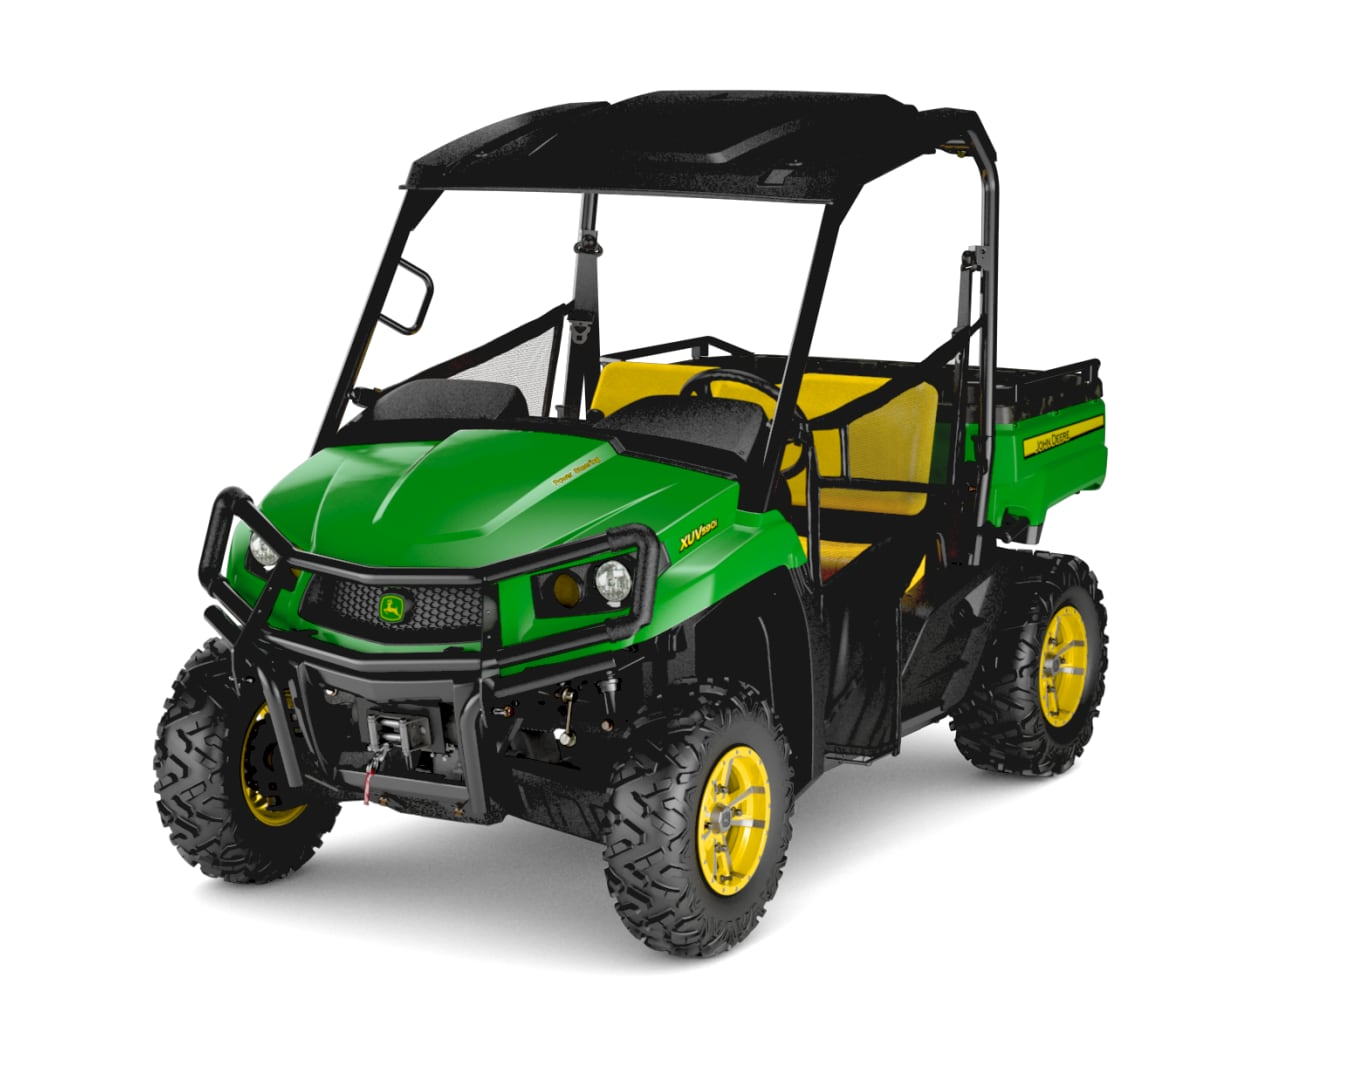 john deere xuv 825i gator wiring diagram john deere gator 825i electrical wiring wiring diagram. Black Bedroom Furniture Sets. Home Design Ideas